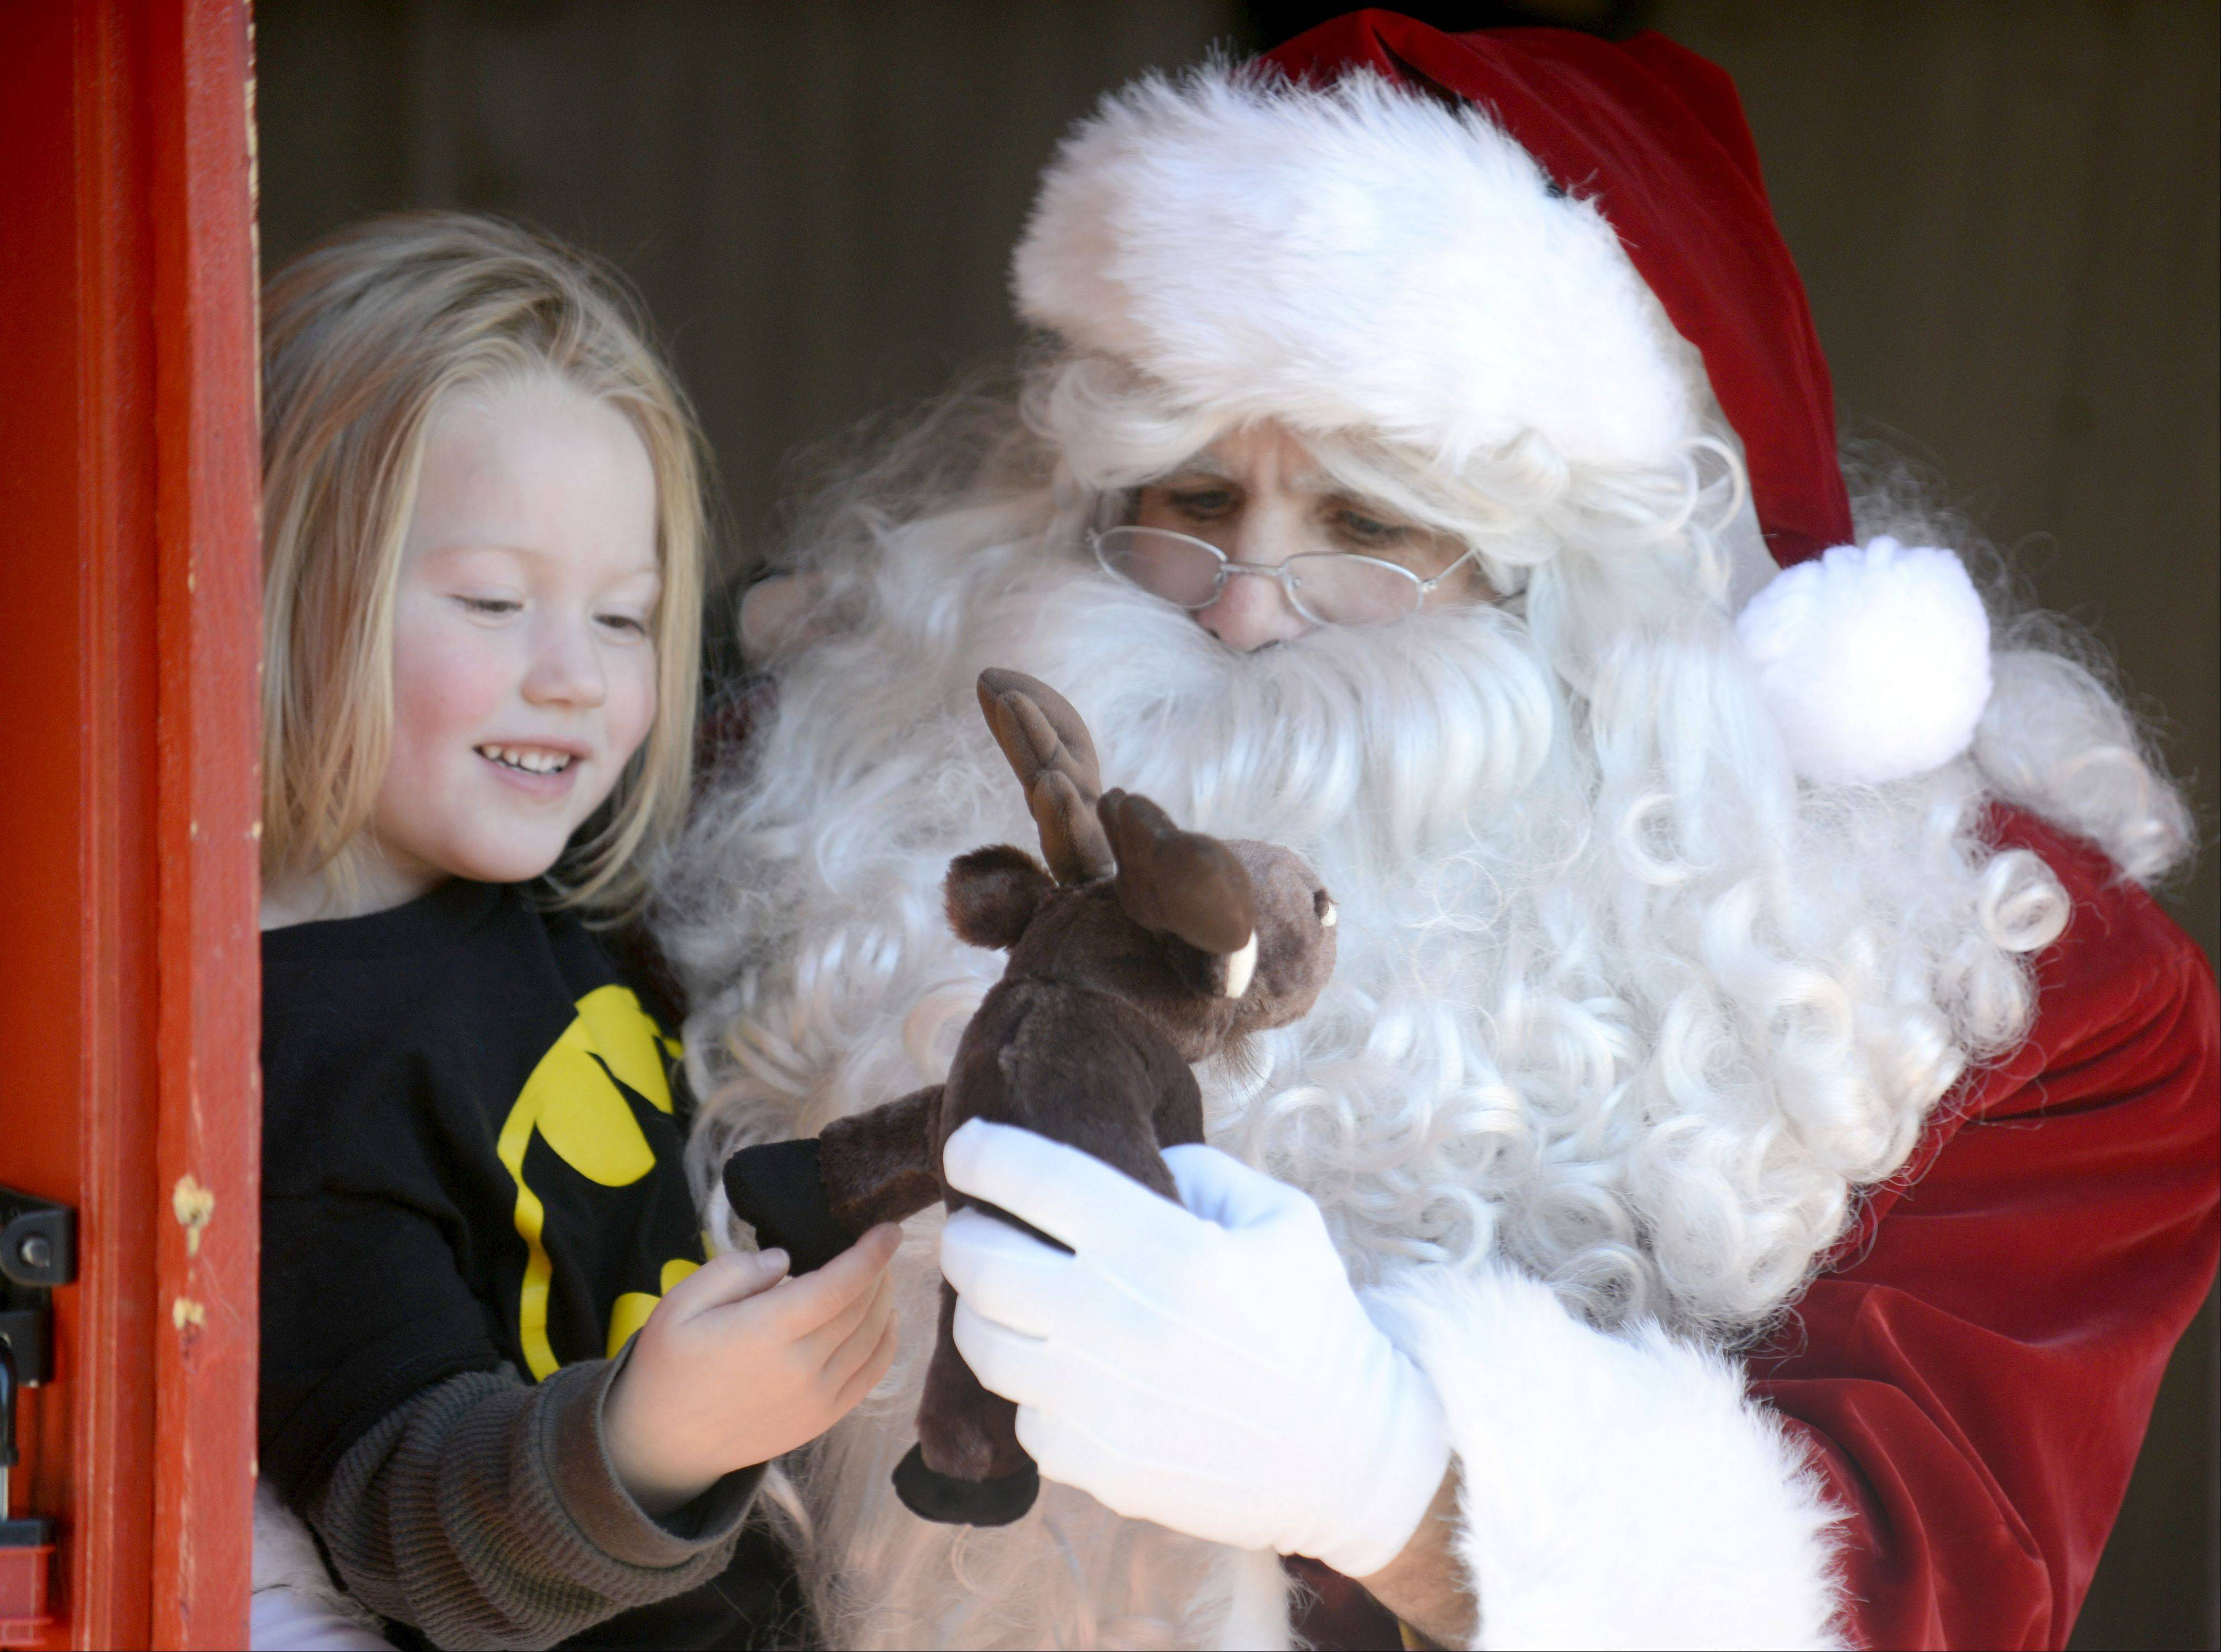 Maggy Kostiwa, 4, of Milwaukee asks Santa for a Batman cape for her moose (to match her shirt) while visiting him Saturday in the First Street Plaza during the St. Charles Holiday Homecoming festivities. Maggy's father, Wade, grew up in St. Charles and was visiting relatives and friends over Thanksgiving. Santa was portrayed by Bill Watson of Lisle. His wife, Shannon, the executive director of the Tri City Health Partnership, was Mrs. Claus.